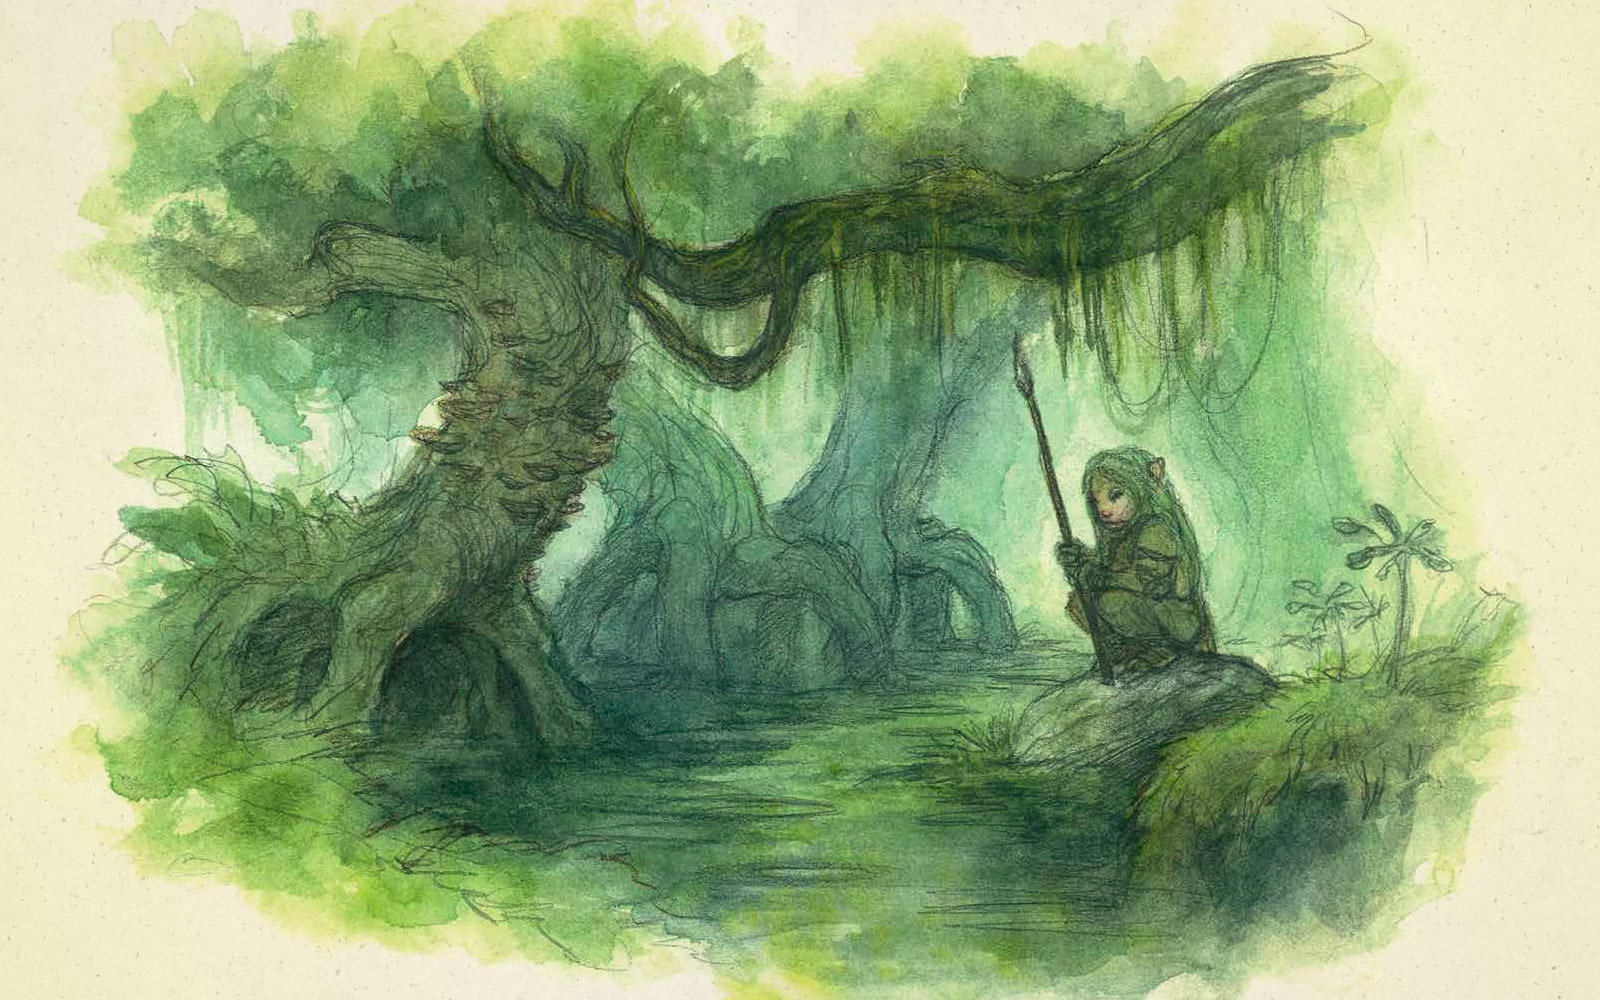 Gelfling illustration from Dark Crystal Bestiary